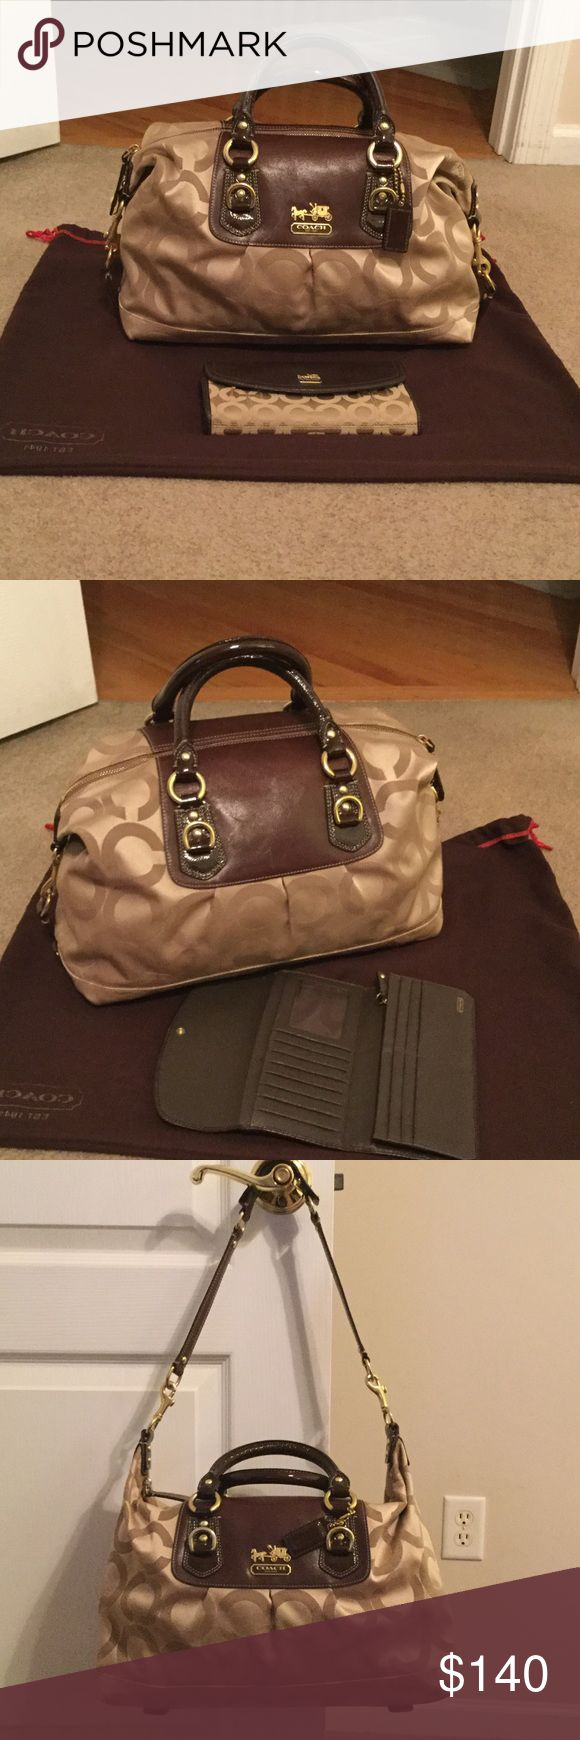 Coach Large Sabrina- Satchel and similar wallet. A great bag, use a few times, but in perfect condition. Comes with storage bag and is convertible. Coach Bags Satchels